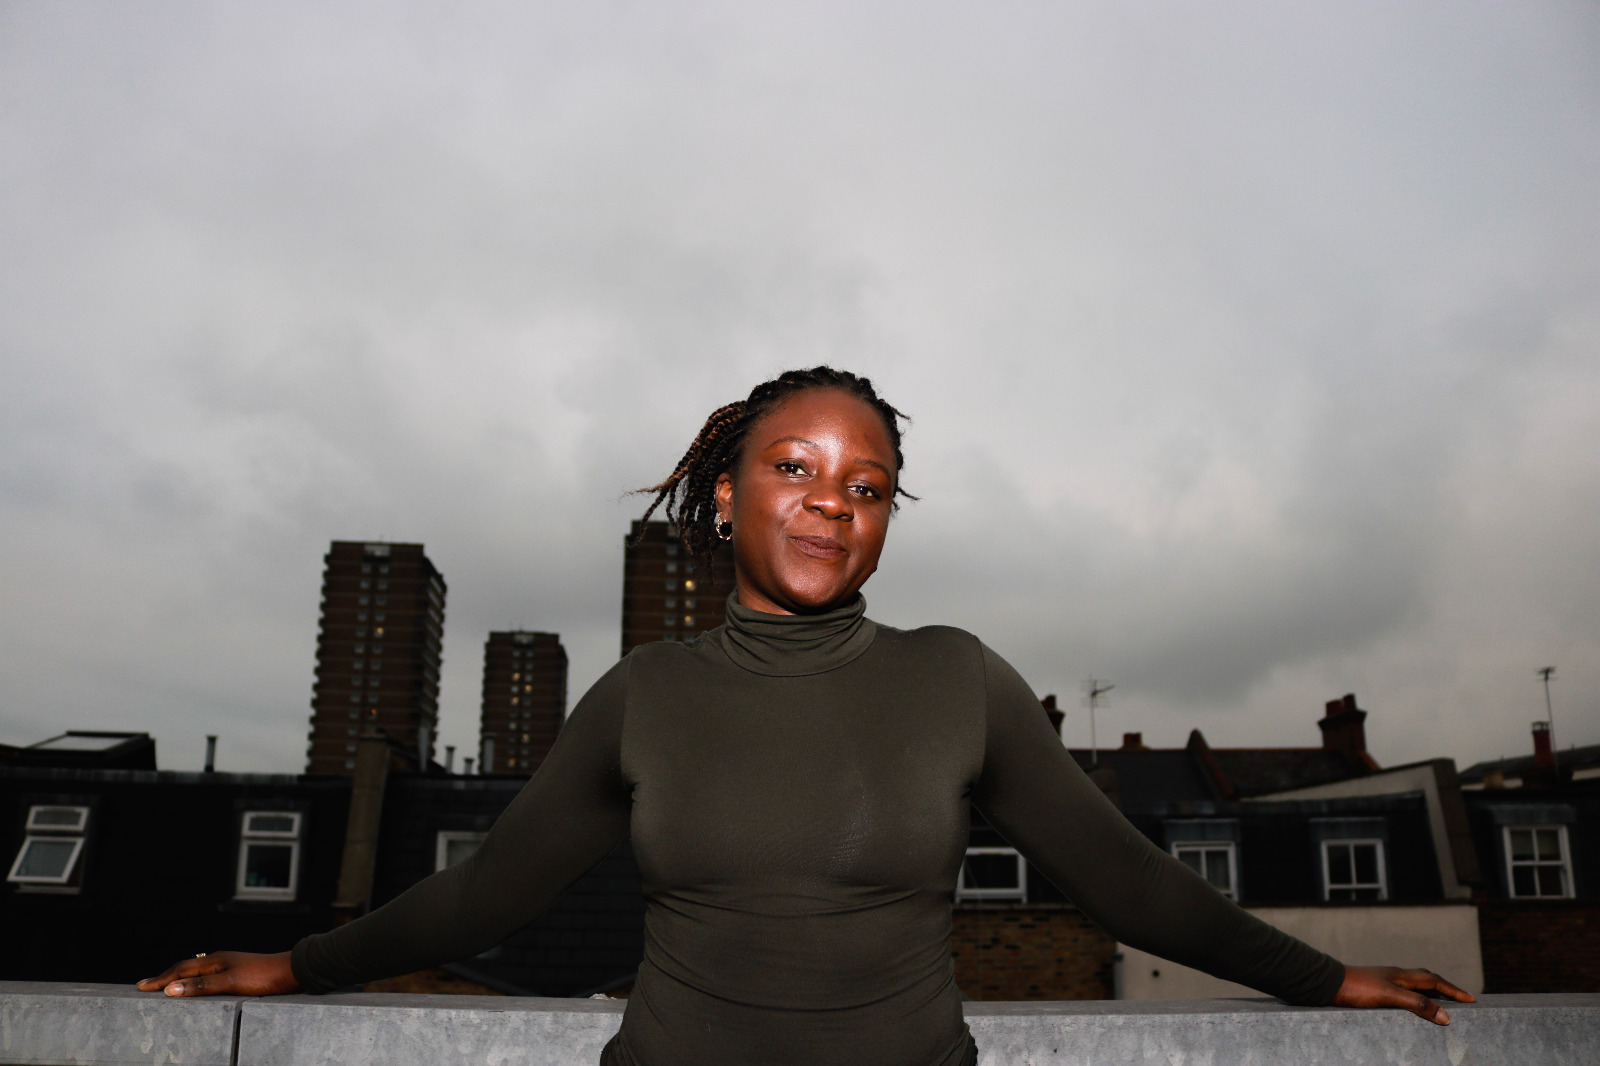 Portrait of Stella with sky line backdrop